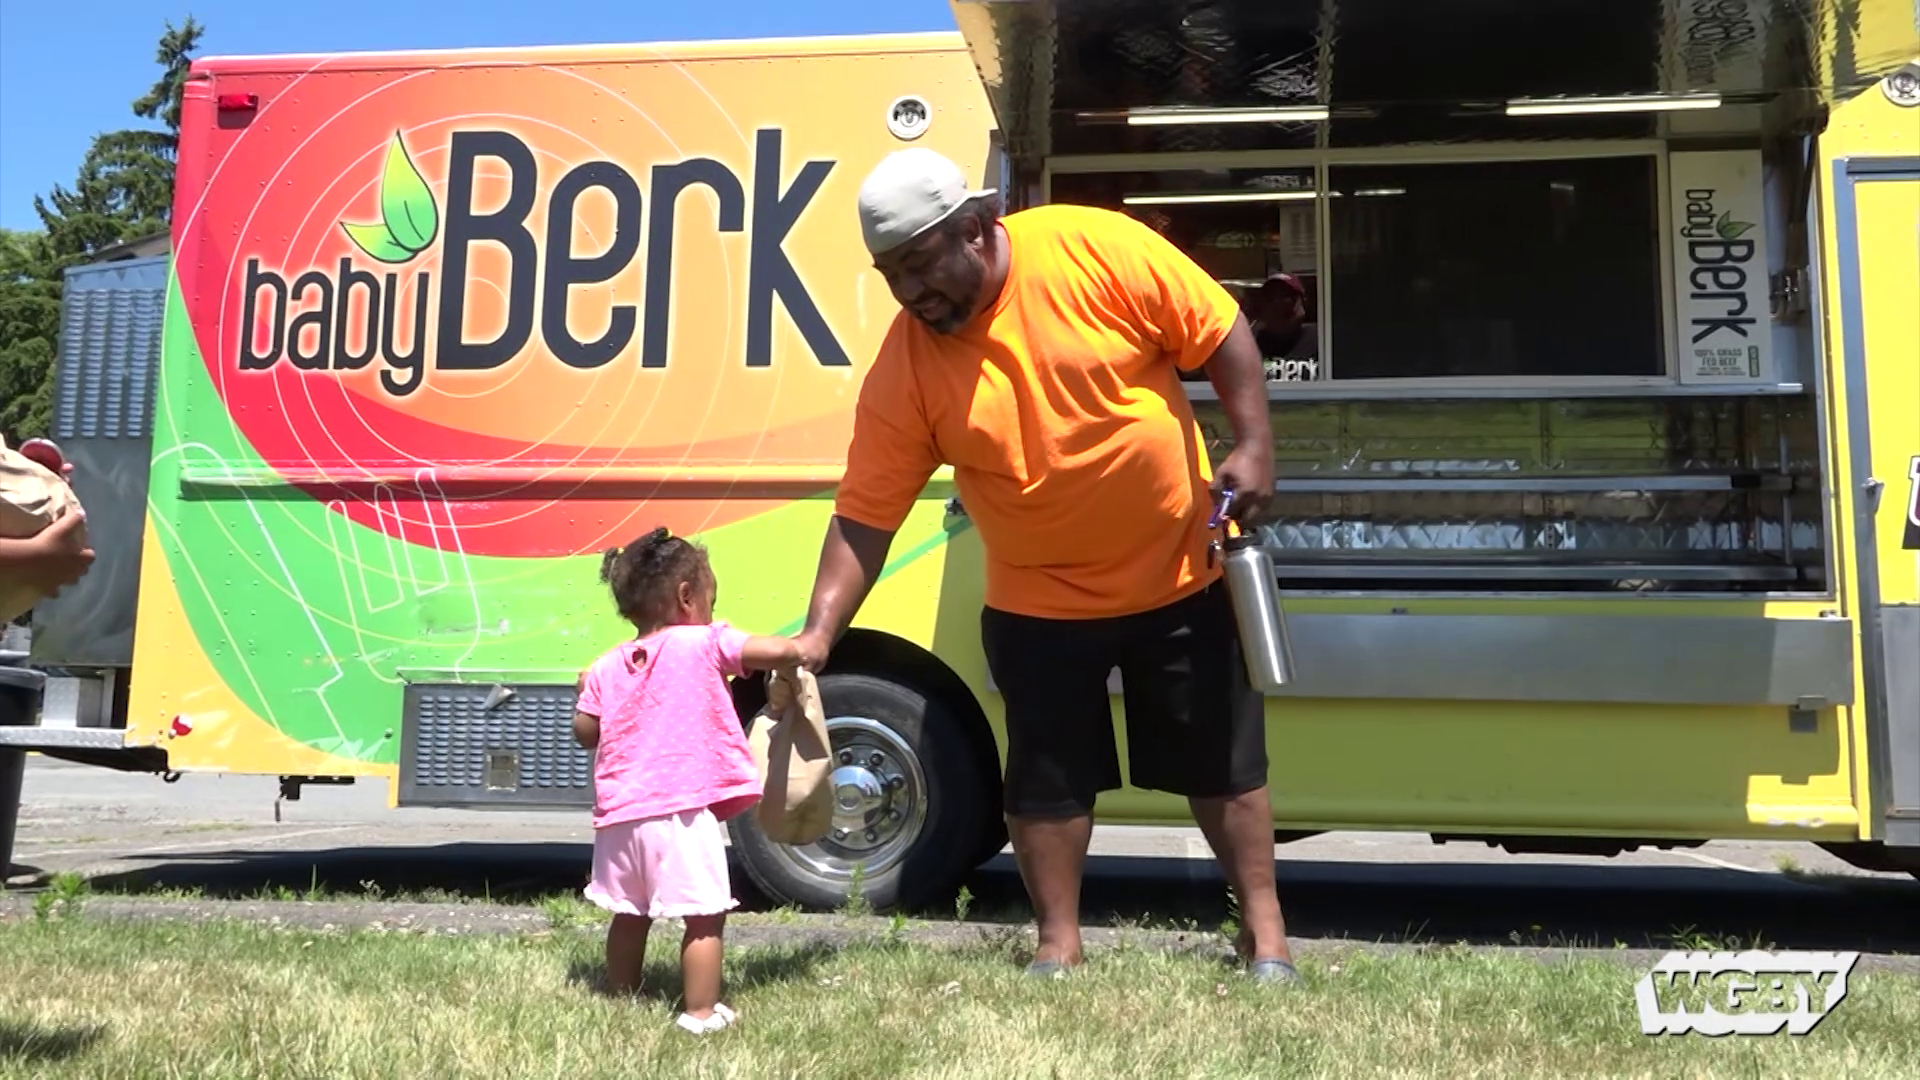 Baby Berk, the UMass Amherst food truck, ventured off campus to provide free, healthy meals to low income kids & teens in Amherst, MA over the summer.